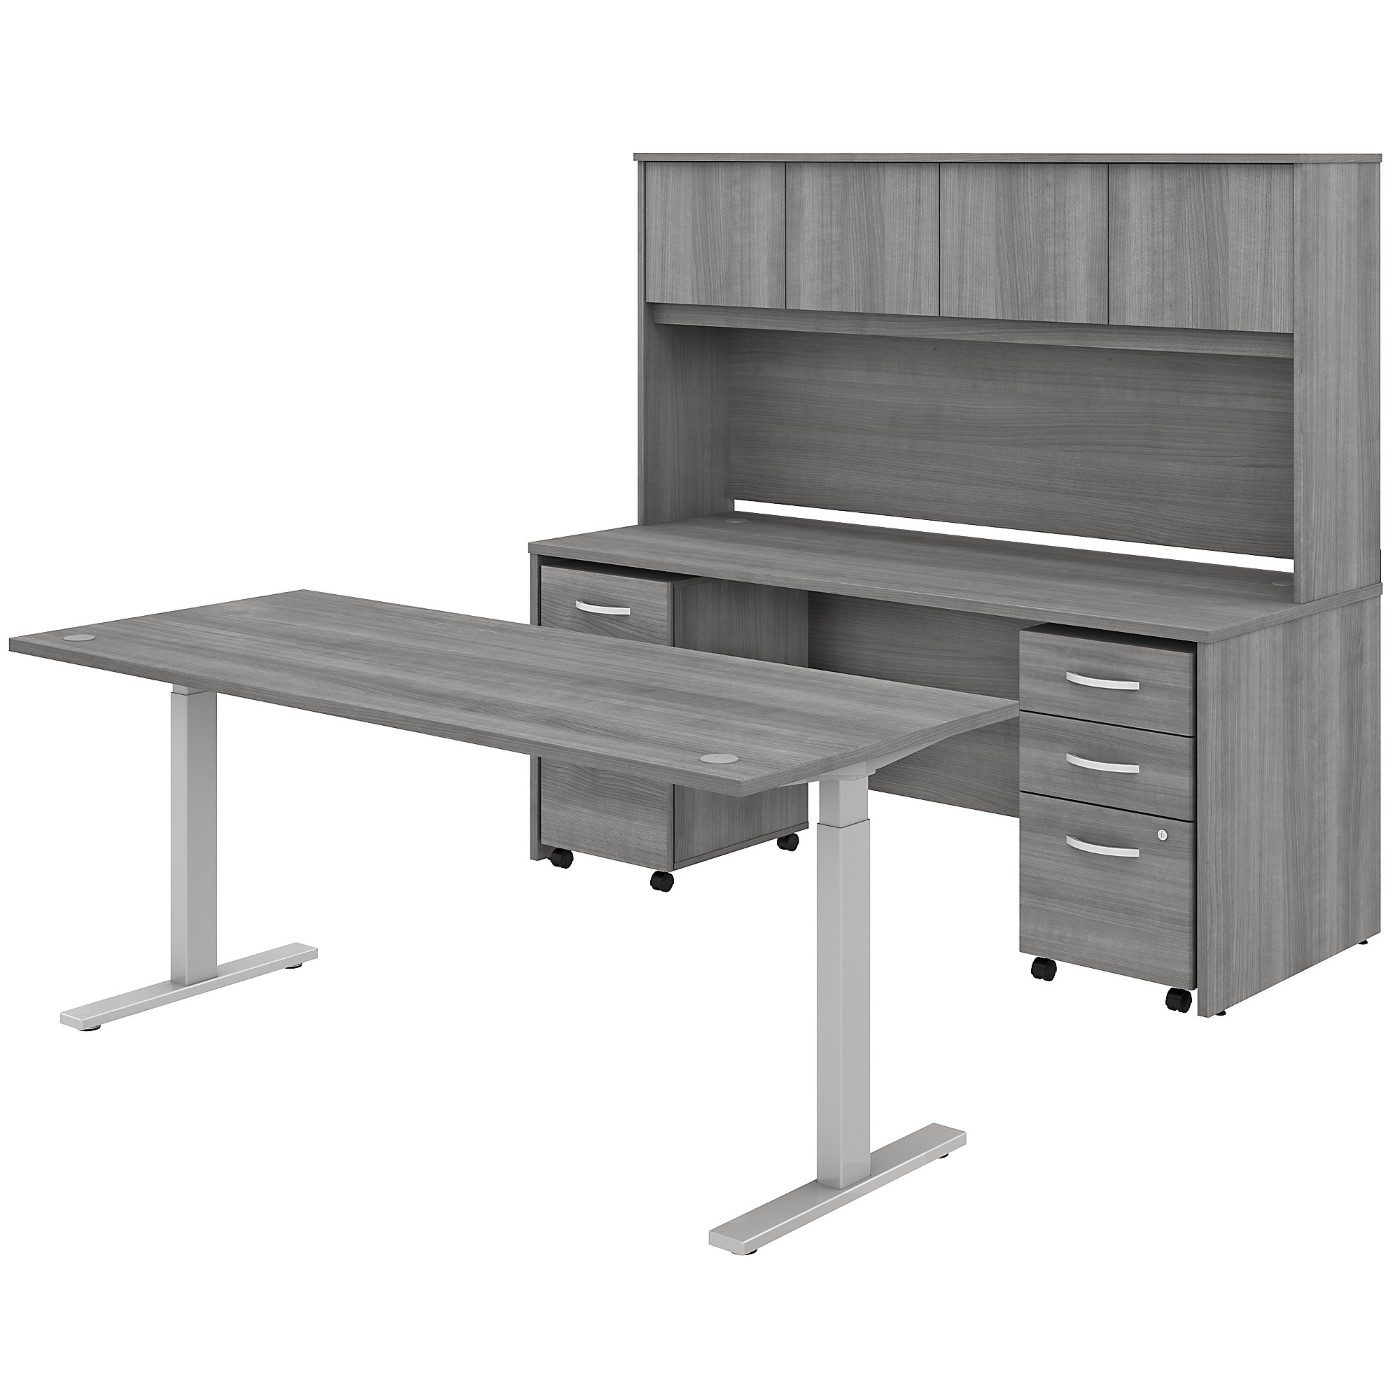 BUSH BUSINESS FURNITURE STUDIO C 72W X 30D HEIGHT ADJUSTABLE STANDING DESK, CREDENZA WITH HUTCH AND MOBILE FILE CABINETS. FREE SHIPPING